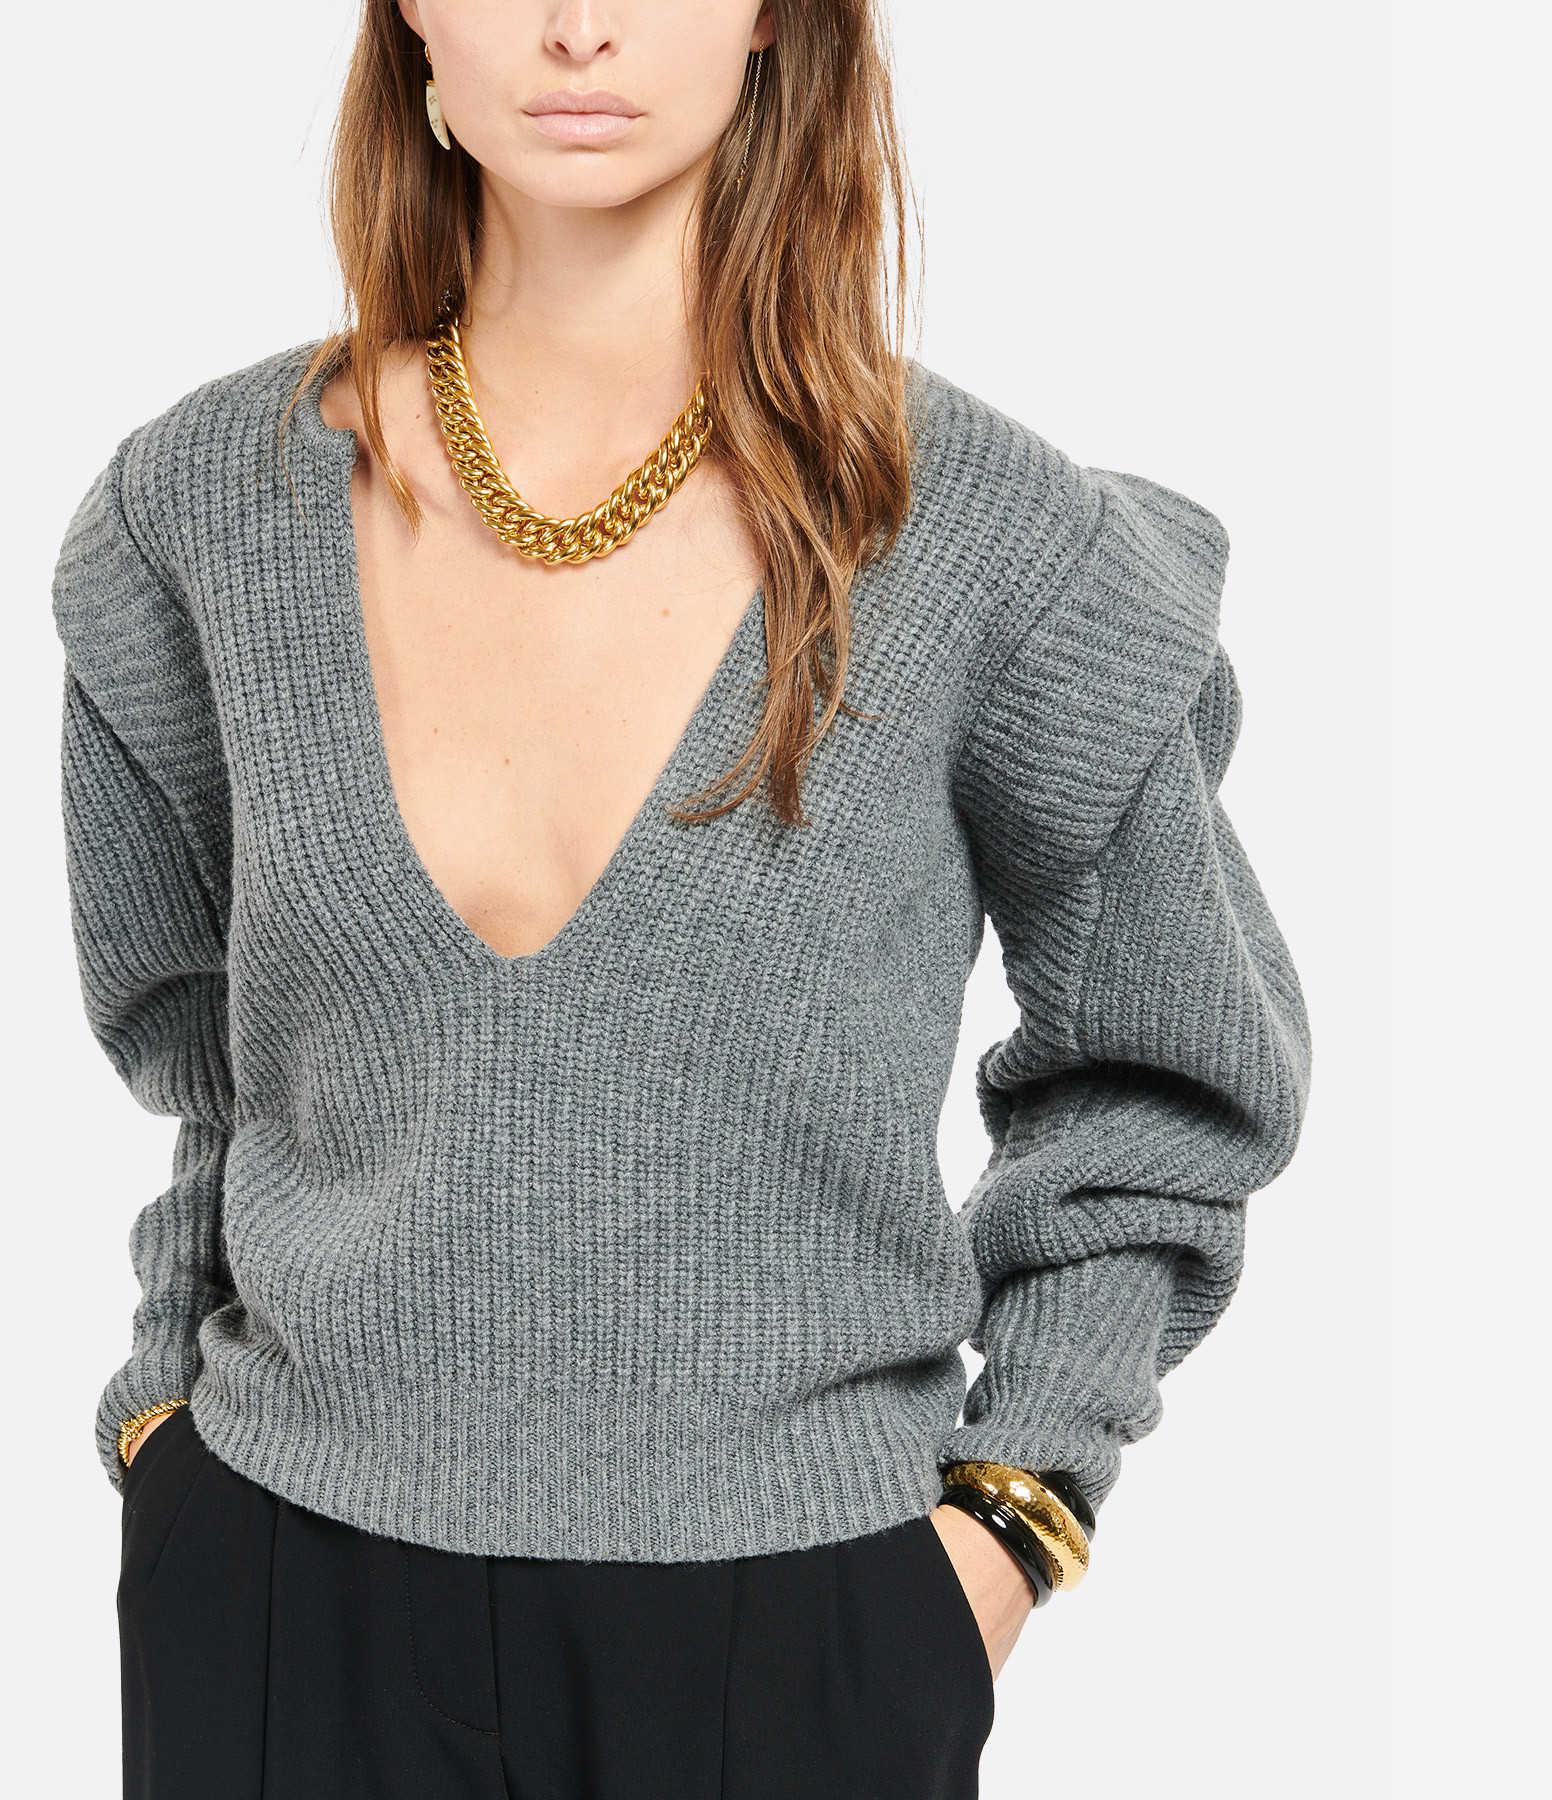 ISABEL MARANT - Pull Reed Laine Cachemire Gris